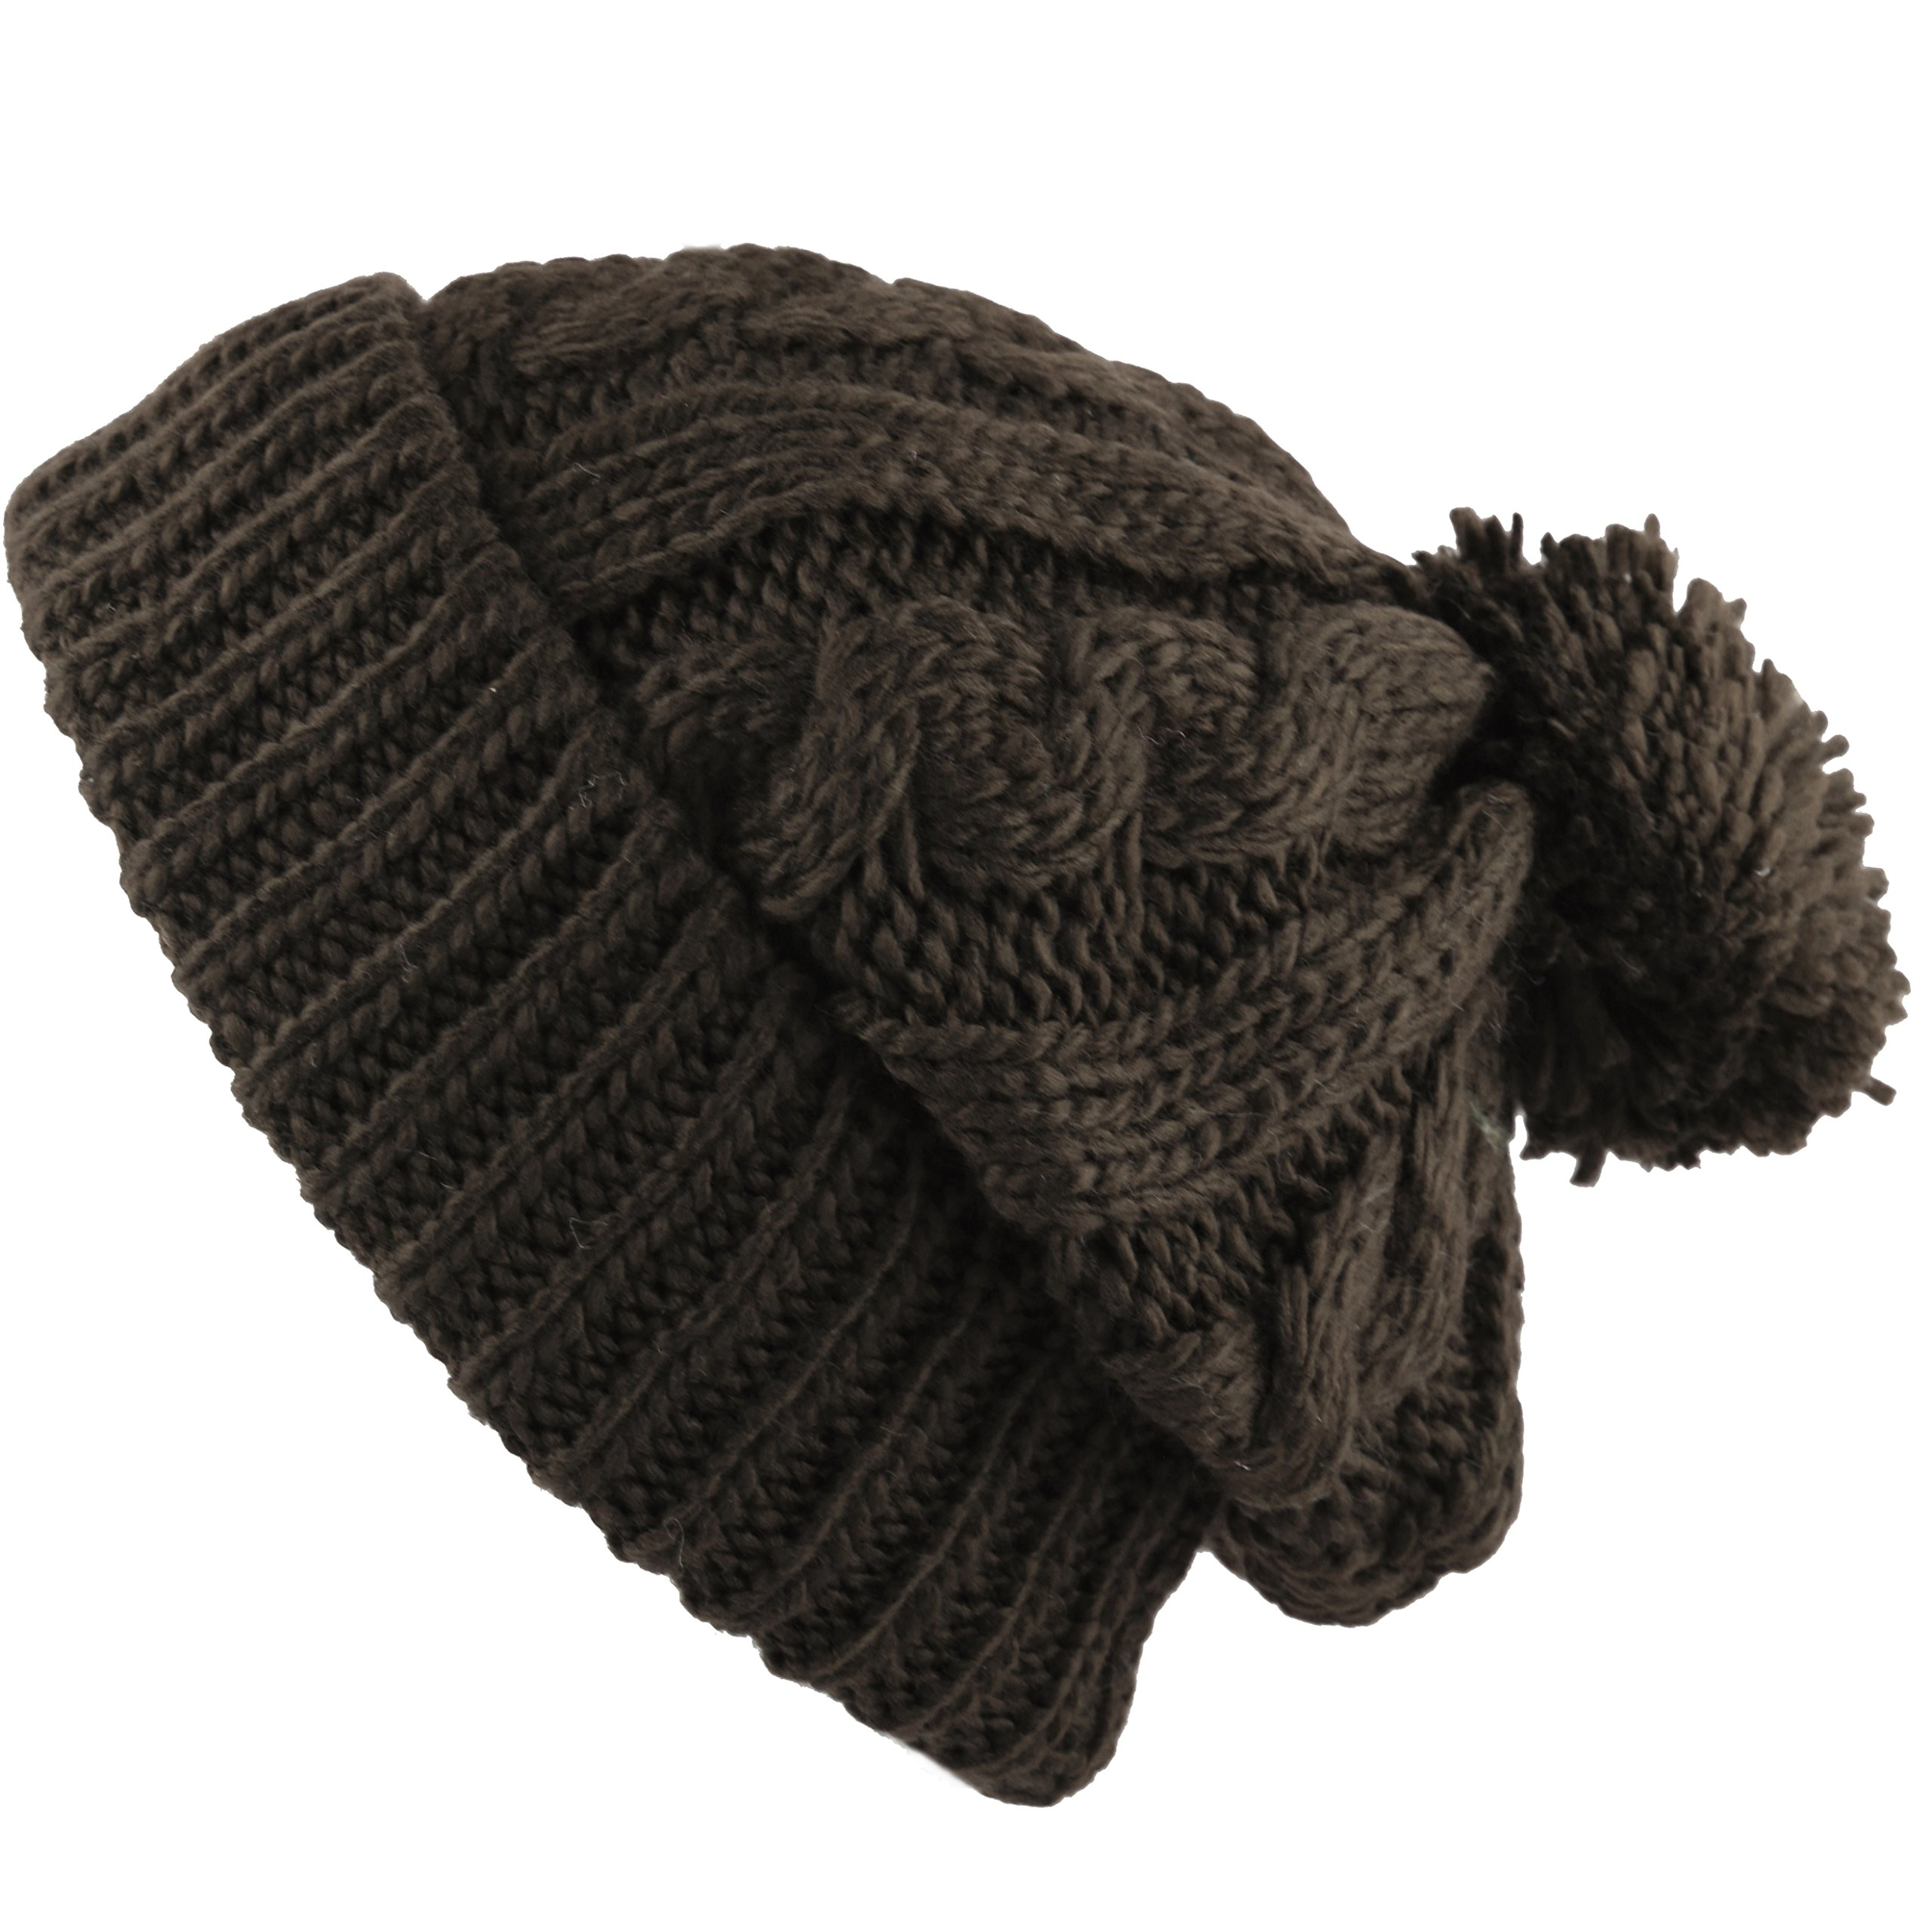 Best Rated in Men's Novelty Beanies & Knit Hats & Helpful